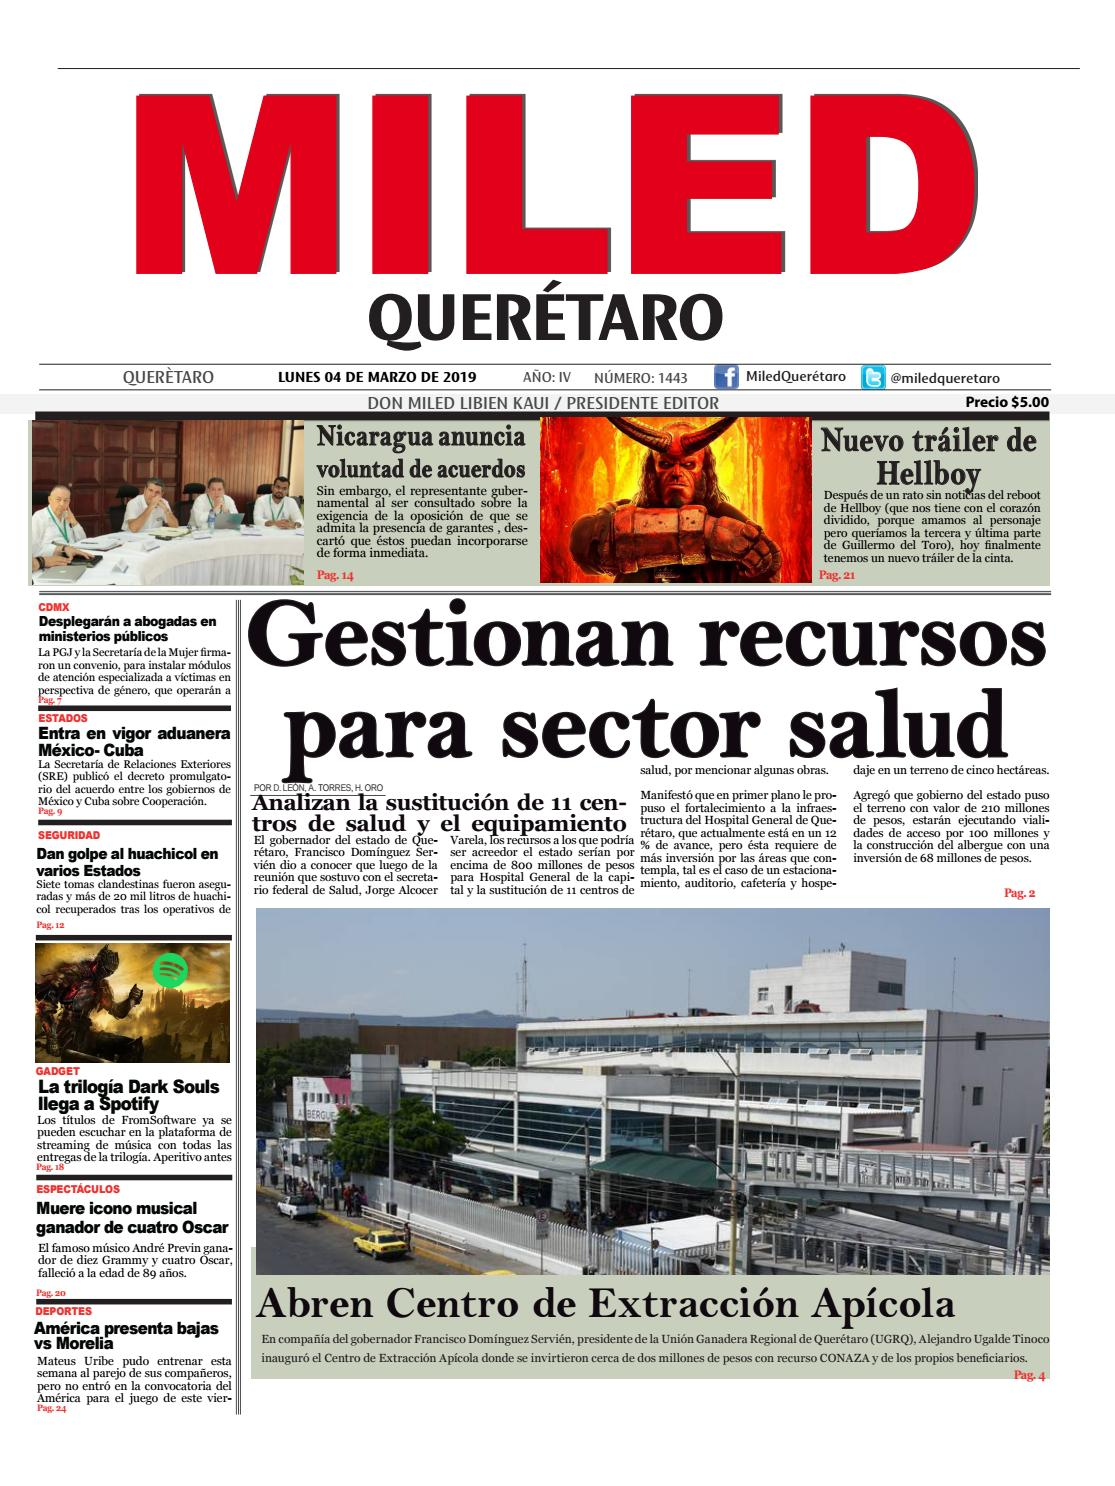 Miled Queretaro 04 03 19 By Miled Estados Issuu